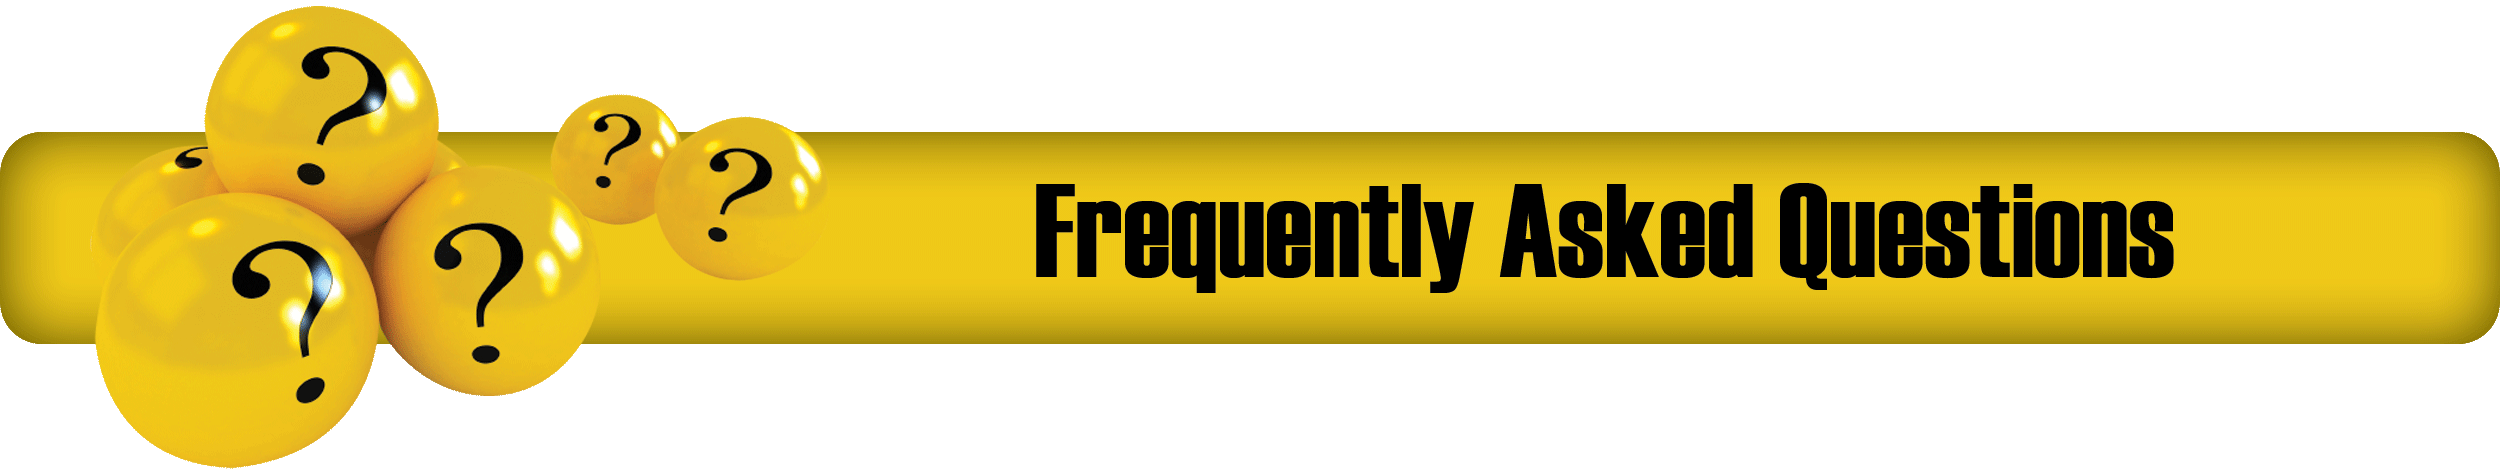 Frequently Asket Questions FAQ